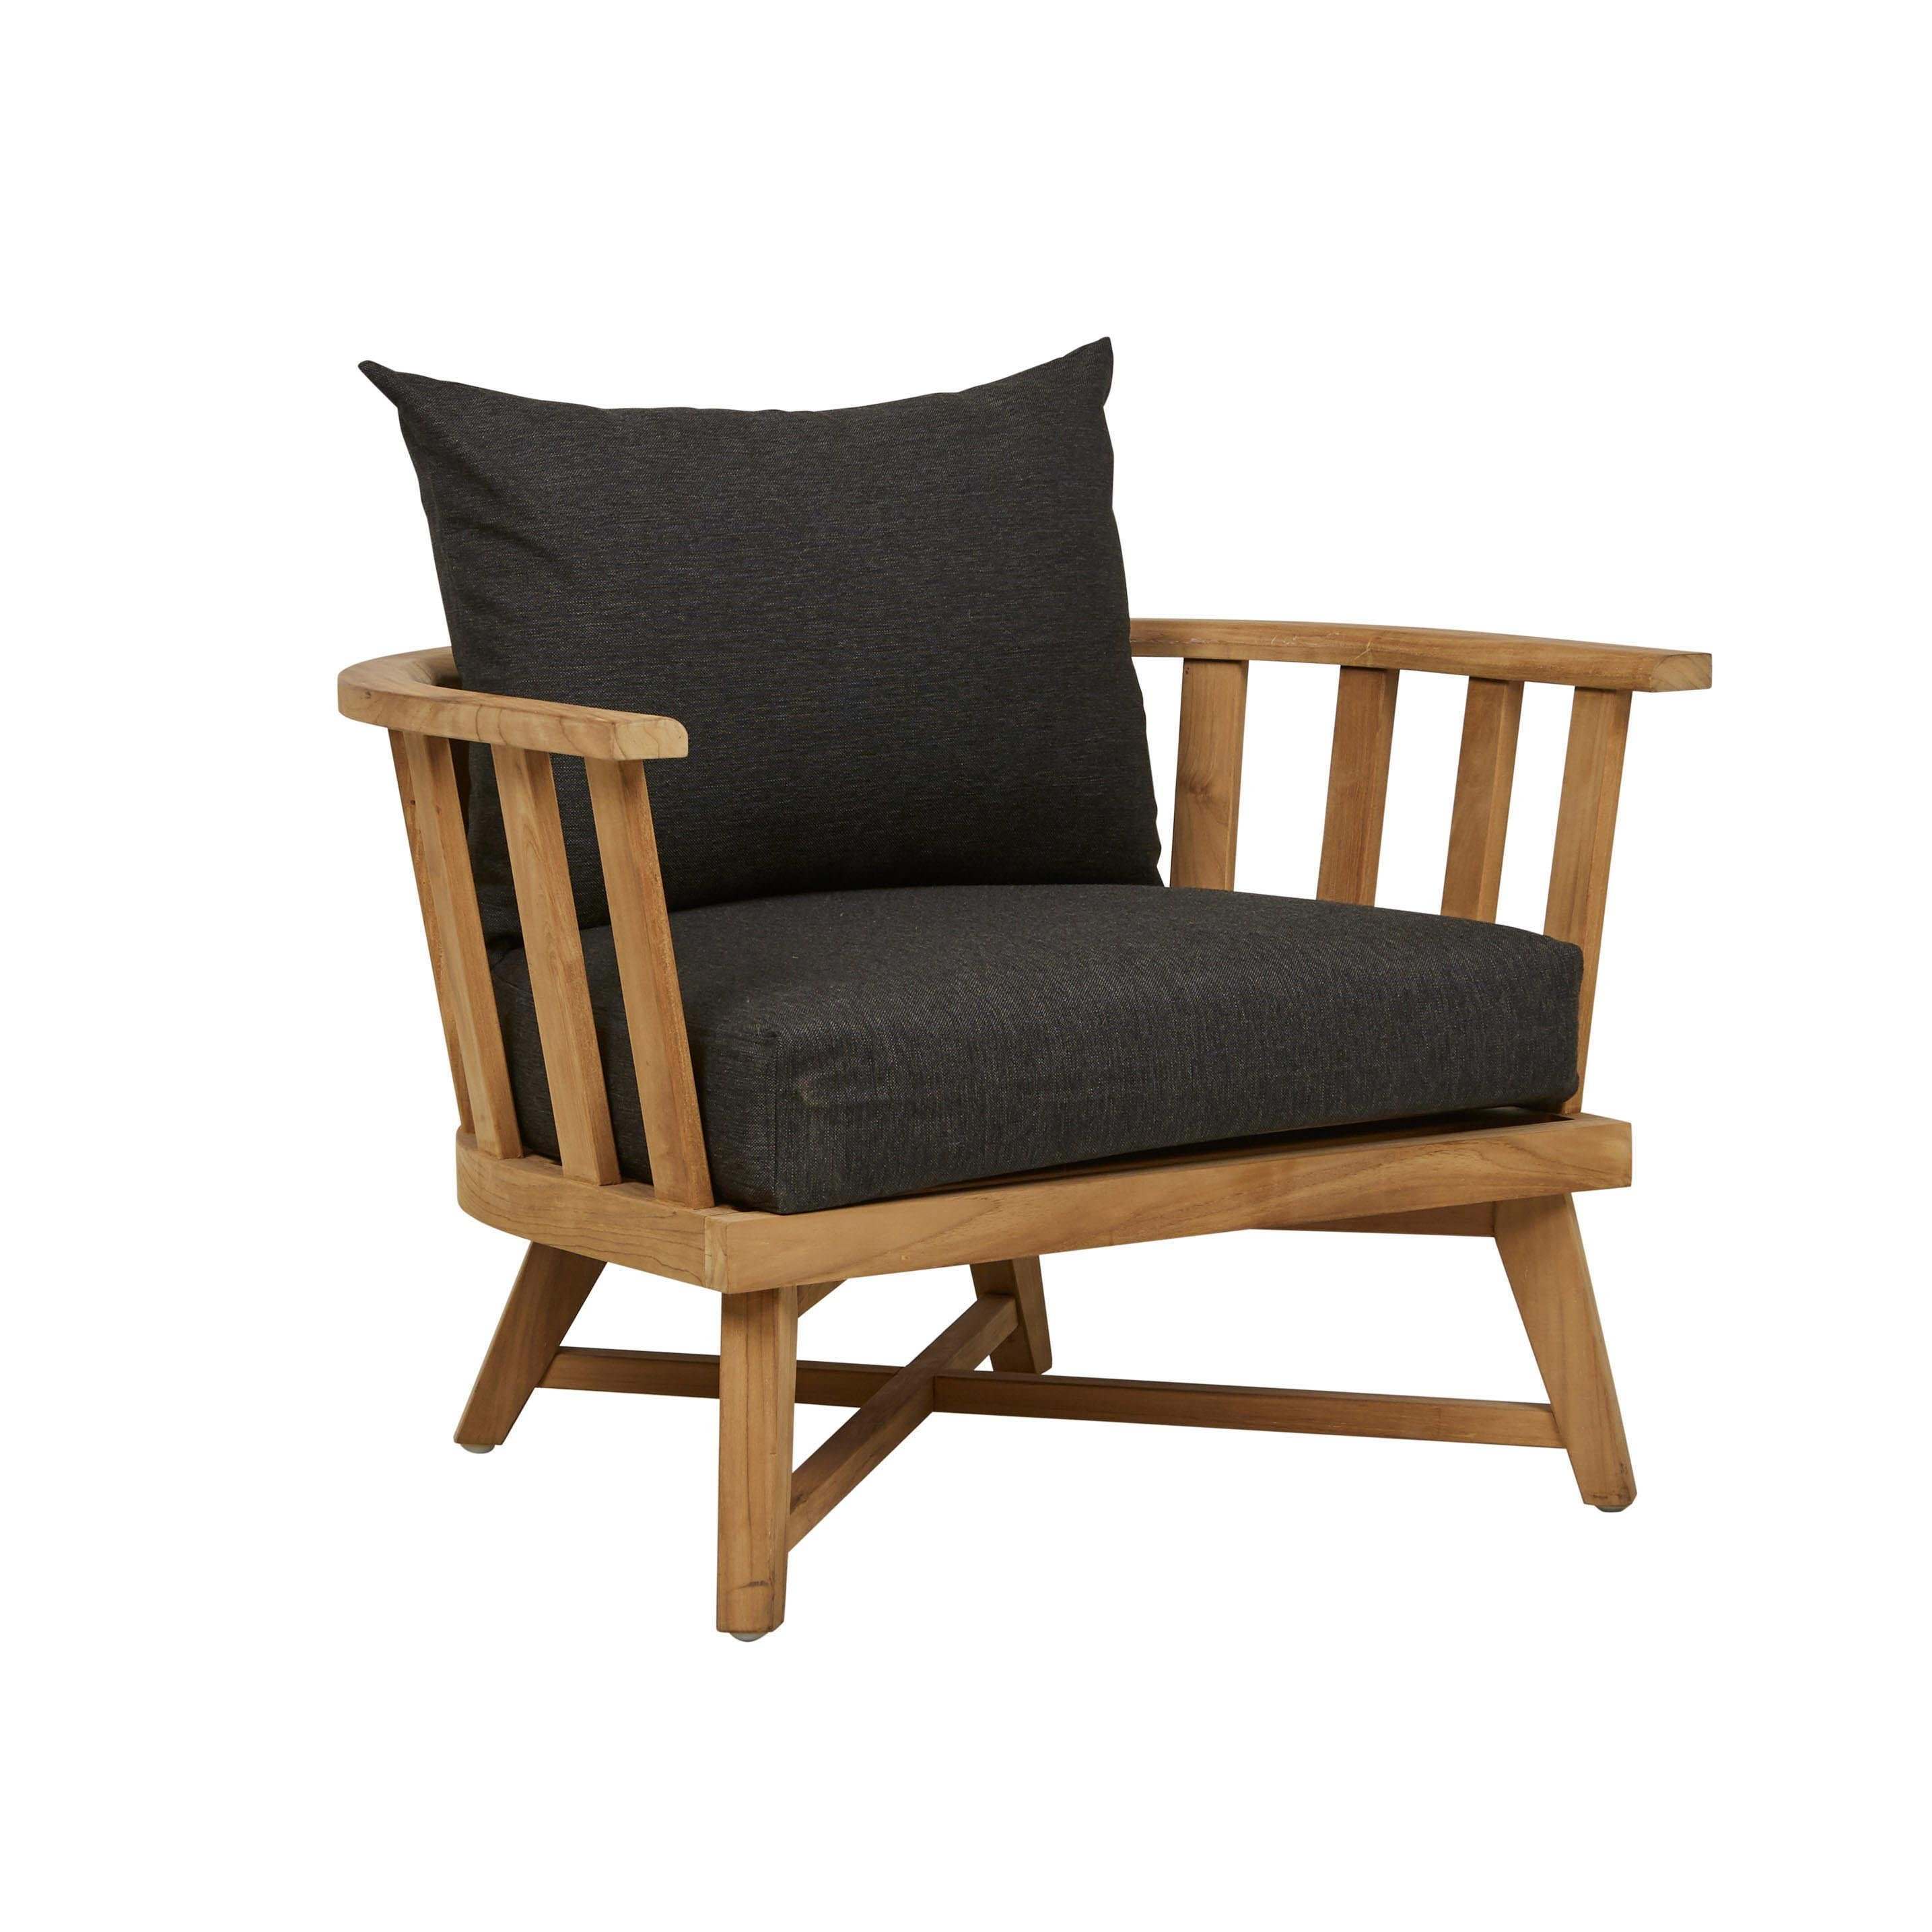 Furniture Hero-Images Occasional-Chairs sonoma-slat-01